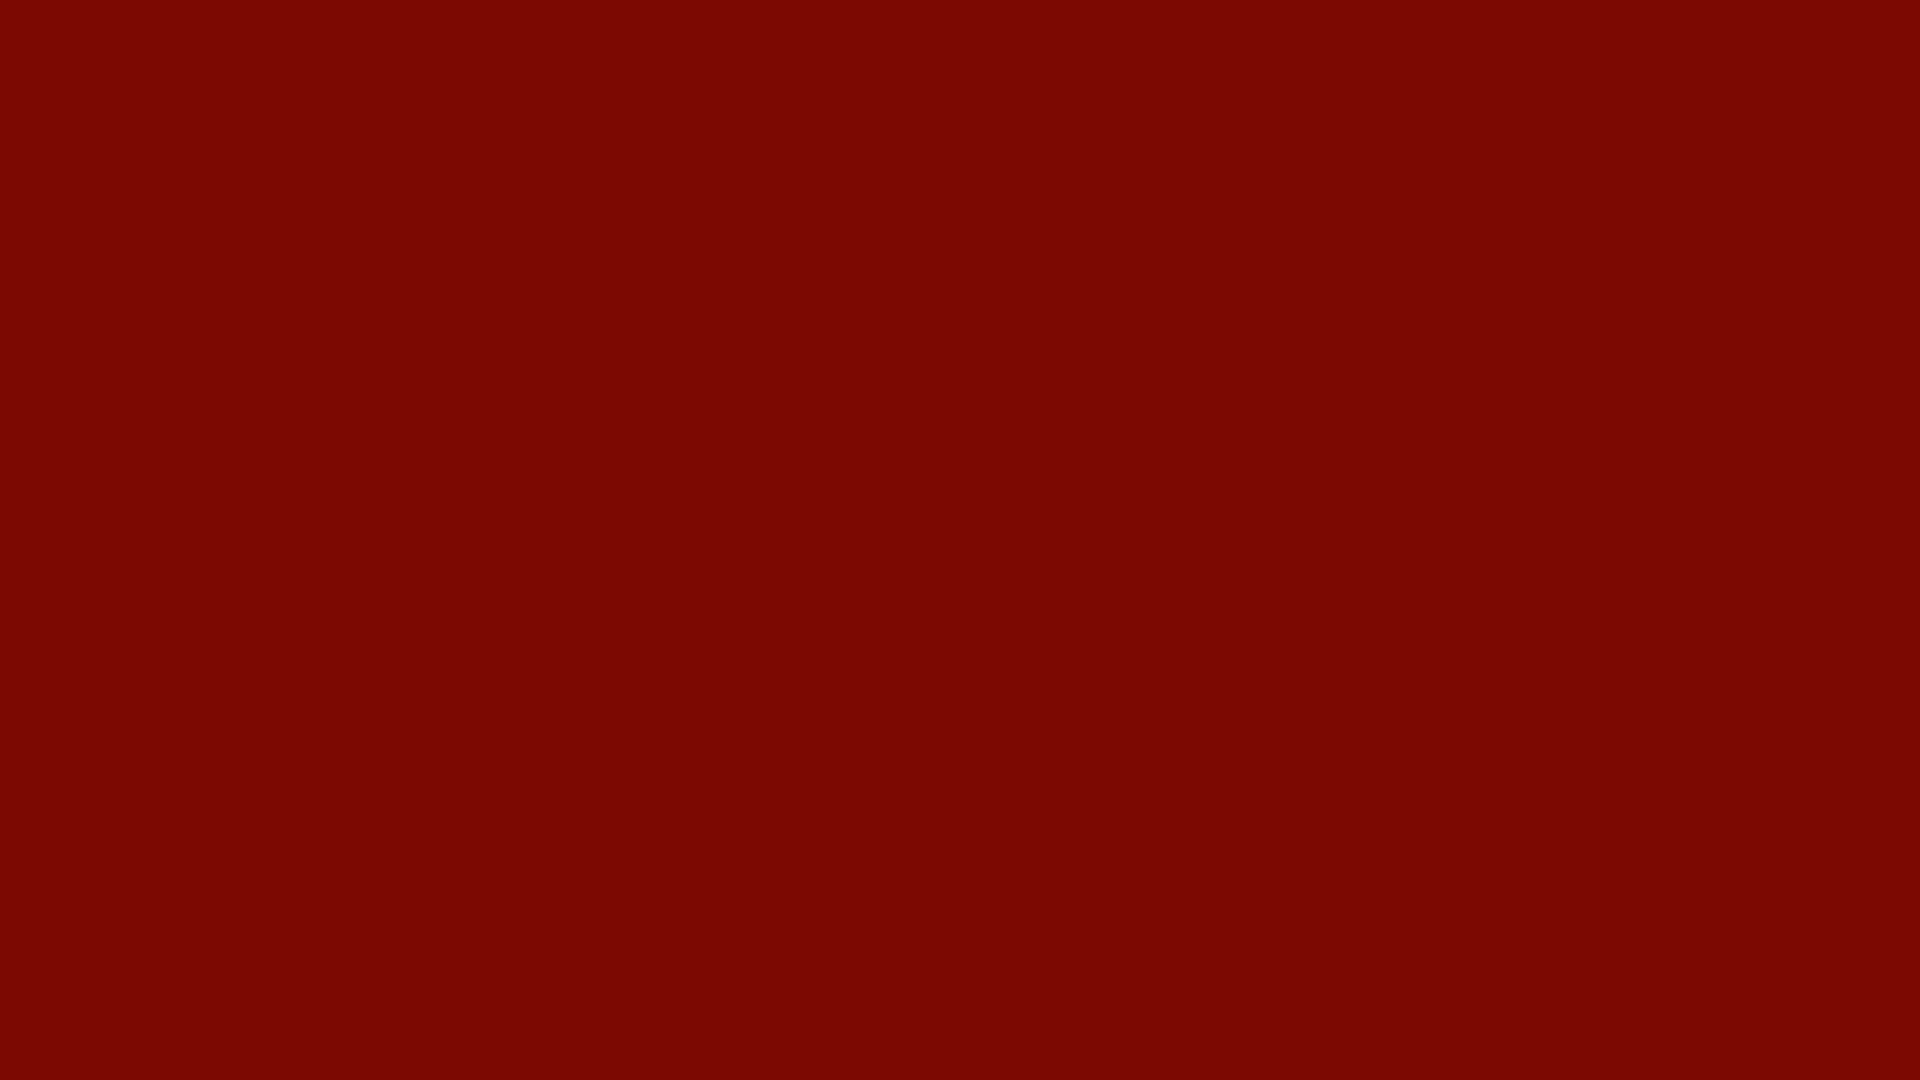 1920x1080 barn red solid color background